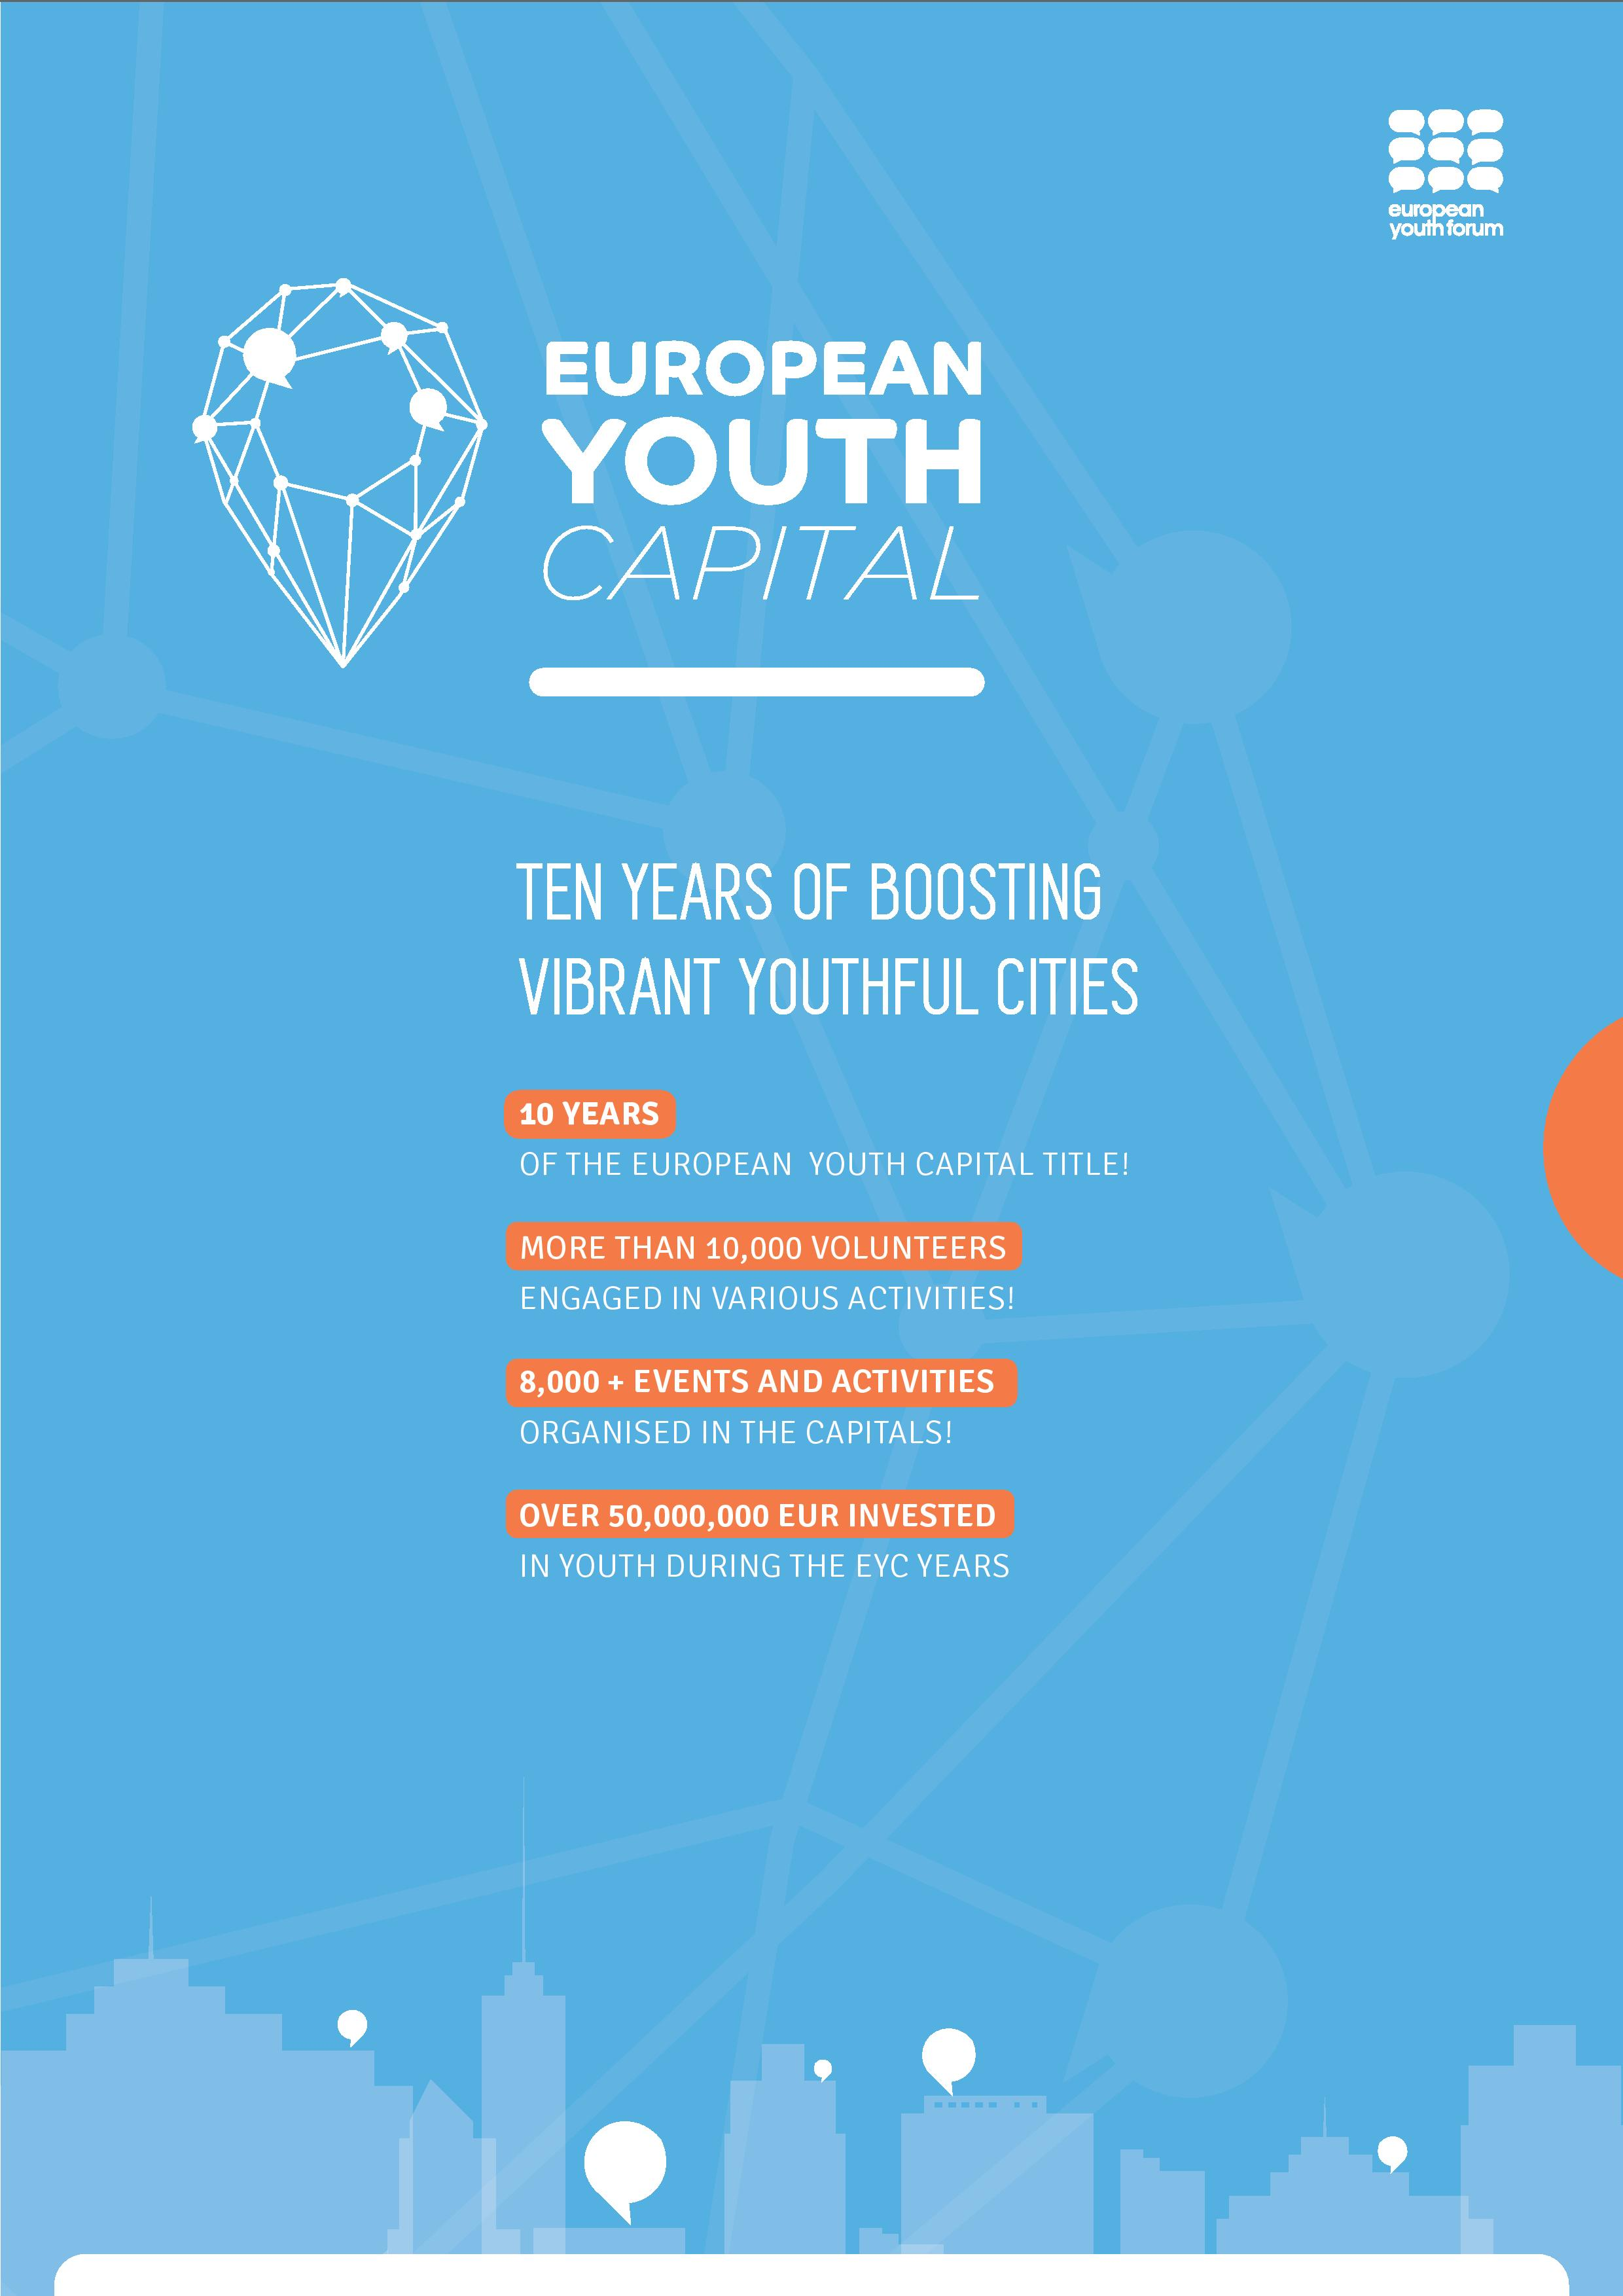 European Youth Capitals - Ten Years of Boosting Vibrant Youthful Cities